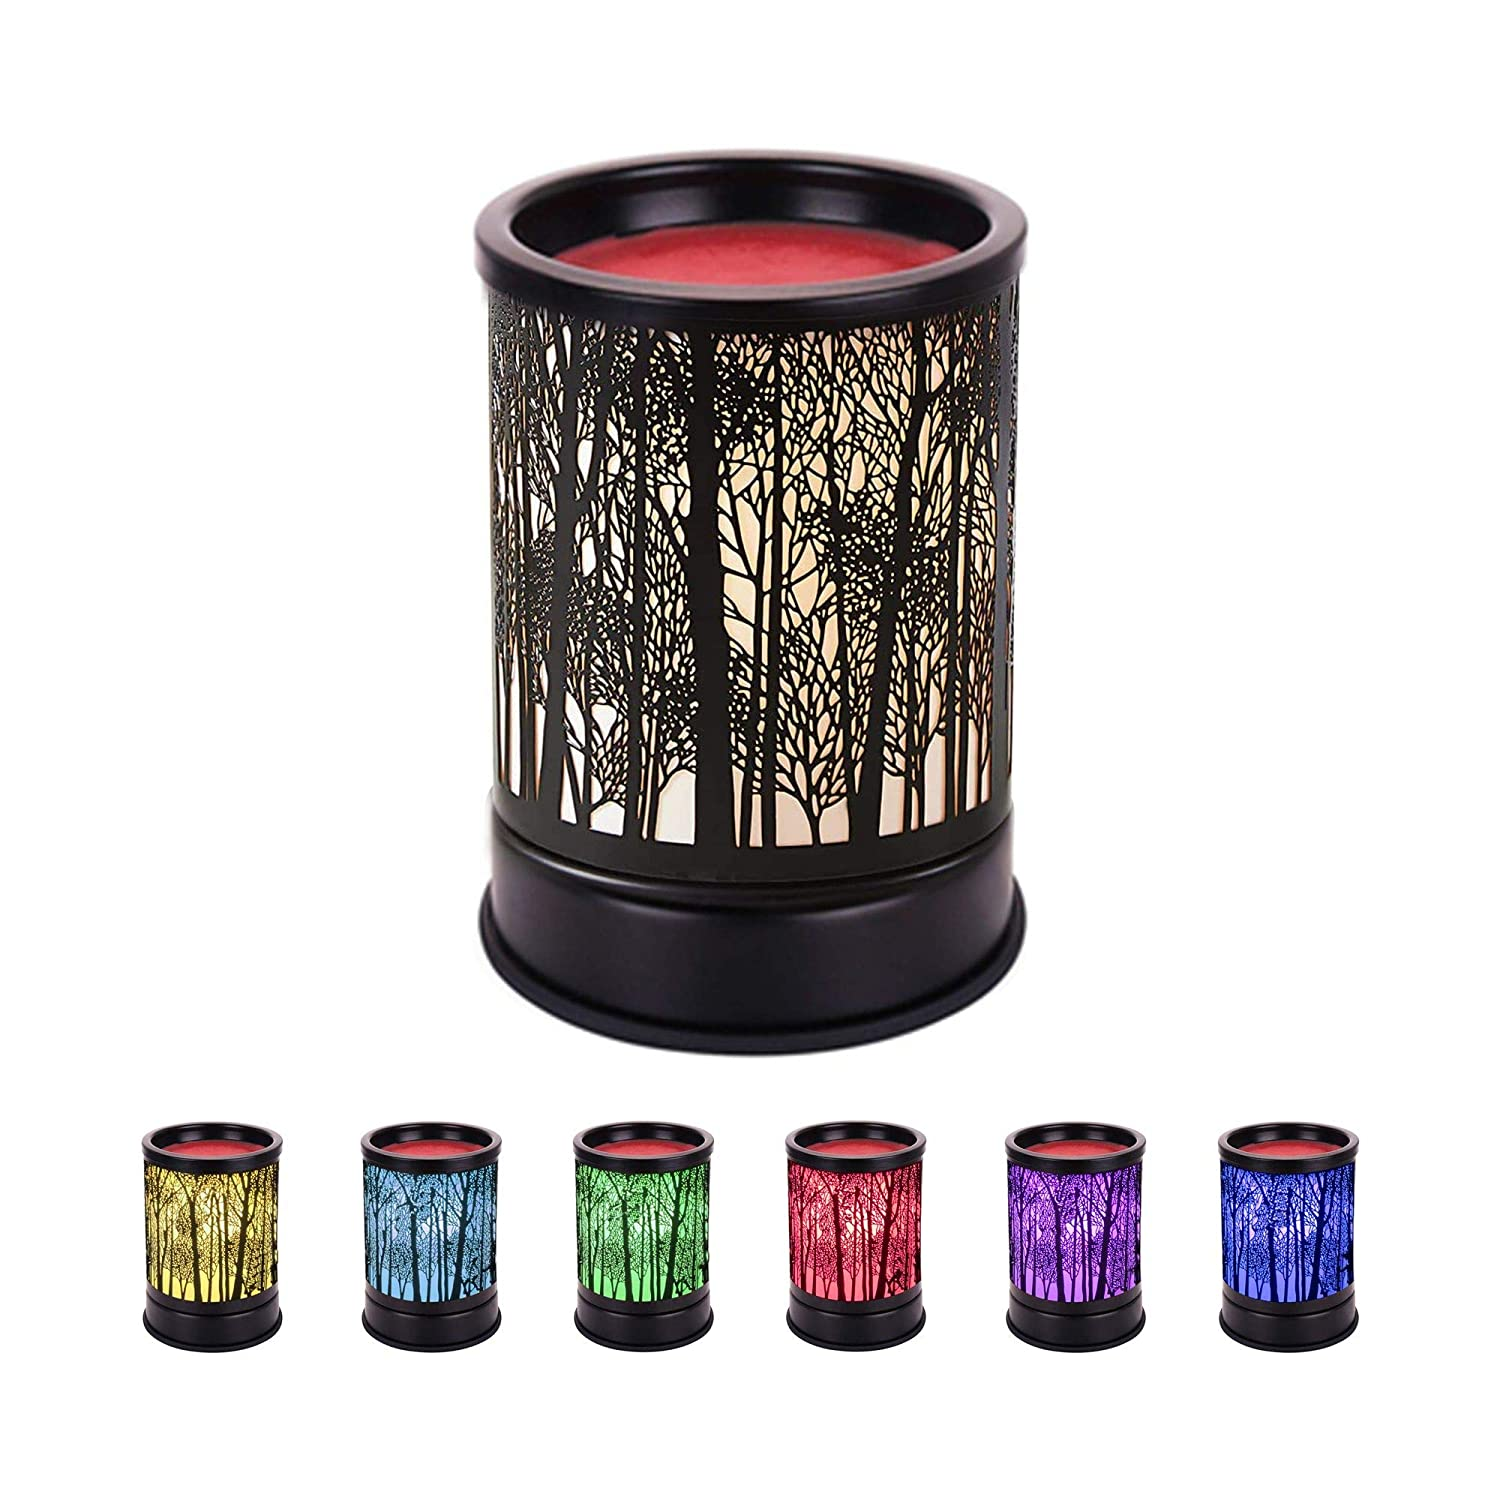 Gaea Electric Candle Warmer Black Metal Forest Wax Melt Warmer with Dimmer Switch Fragrance Oil Burner Tart Burner Aroma Decorative Lamp for Gifts & Decor Gift for Friend and Family (Style 2)